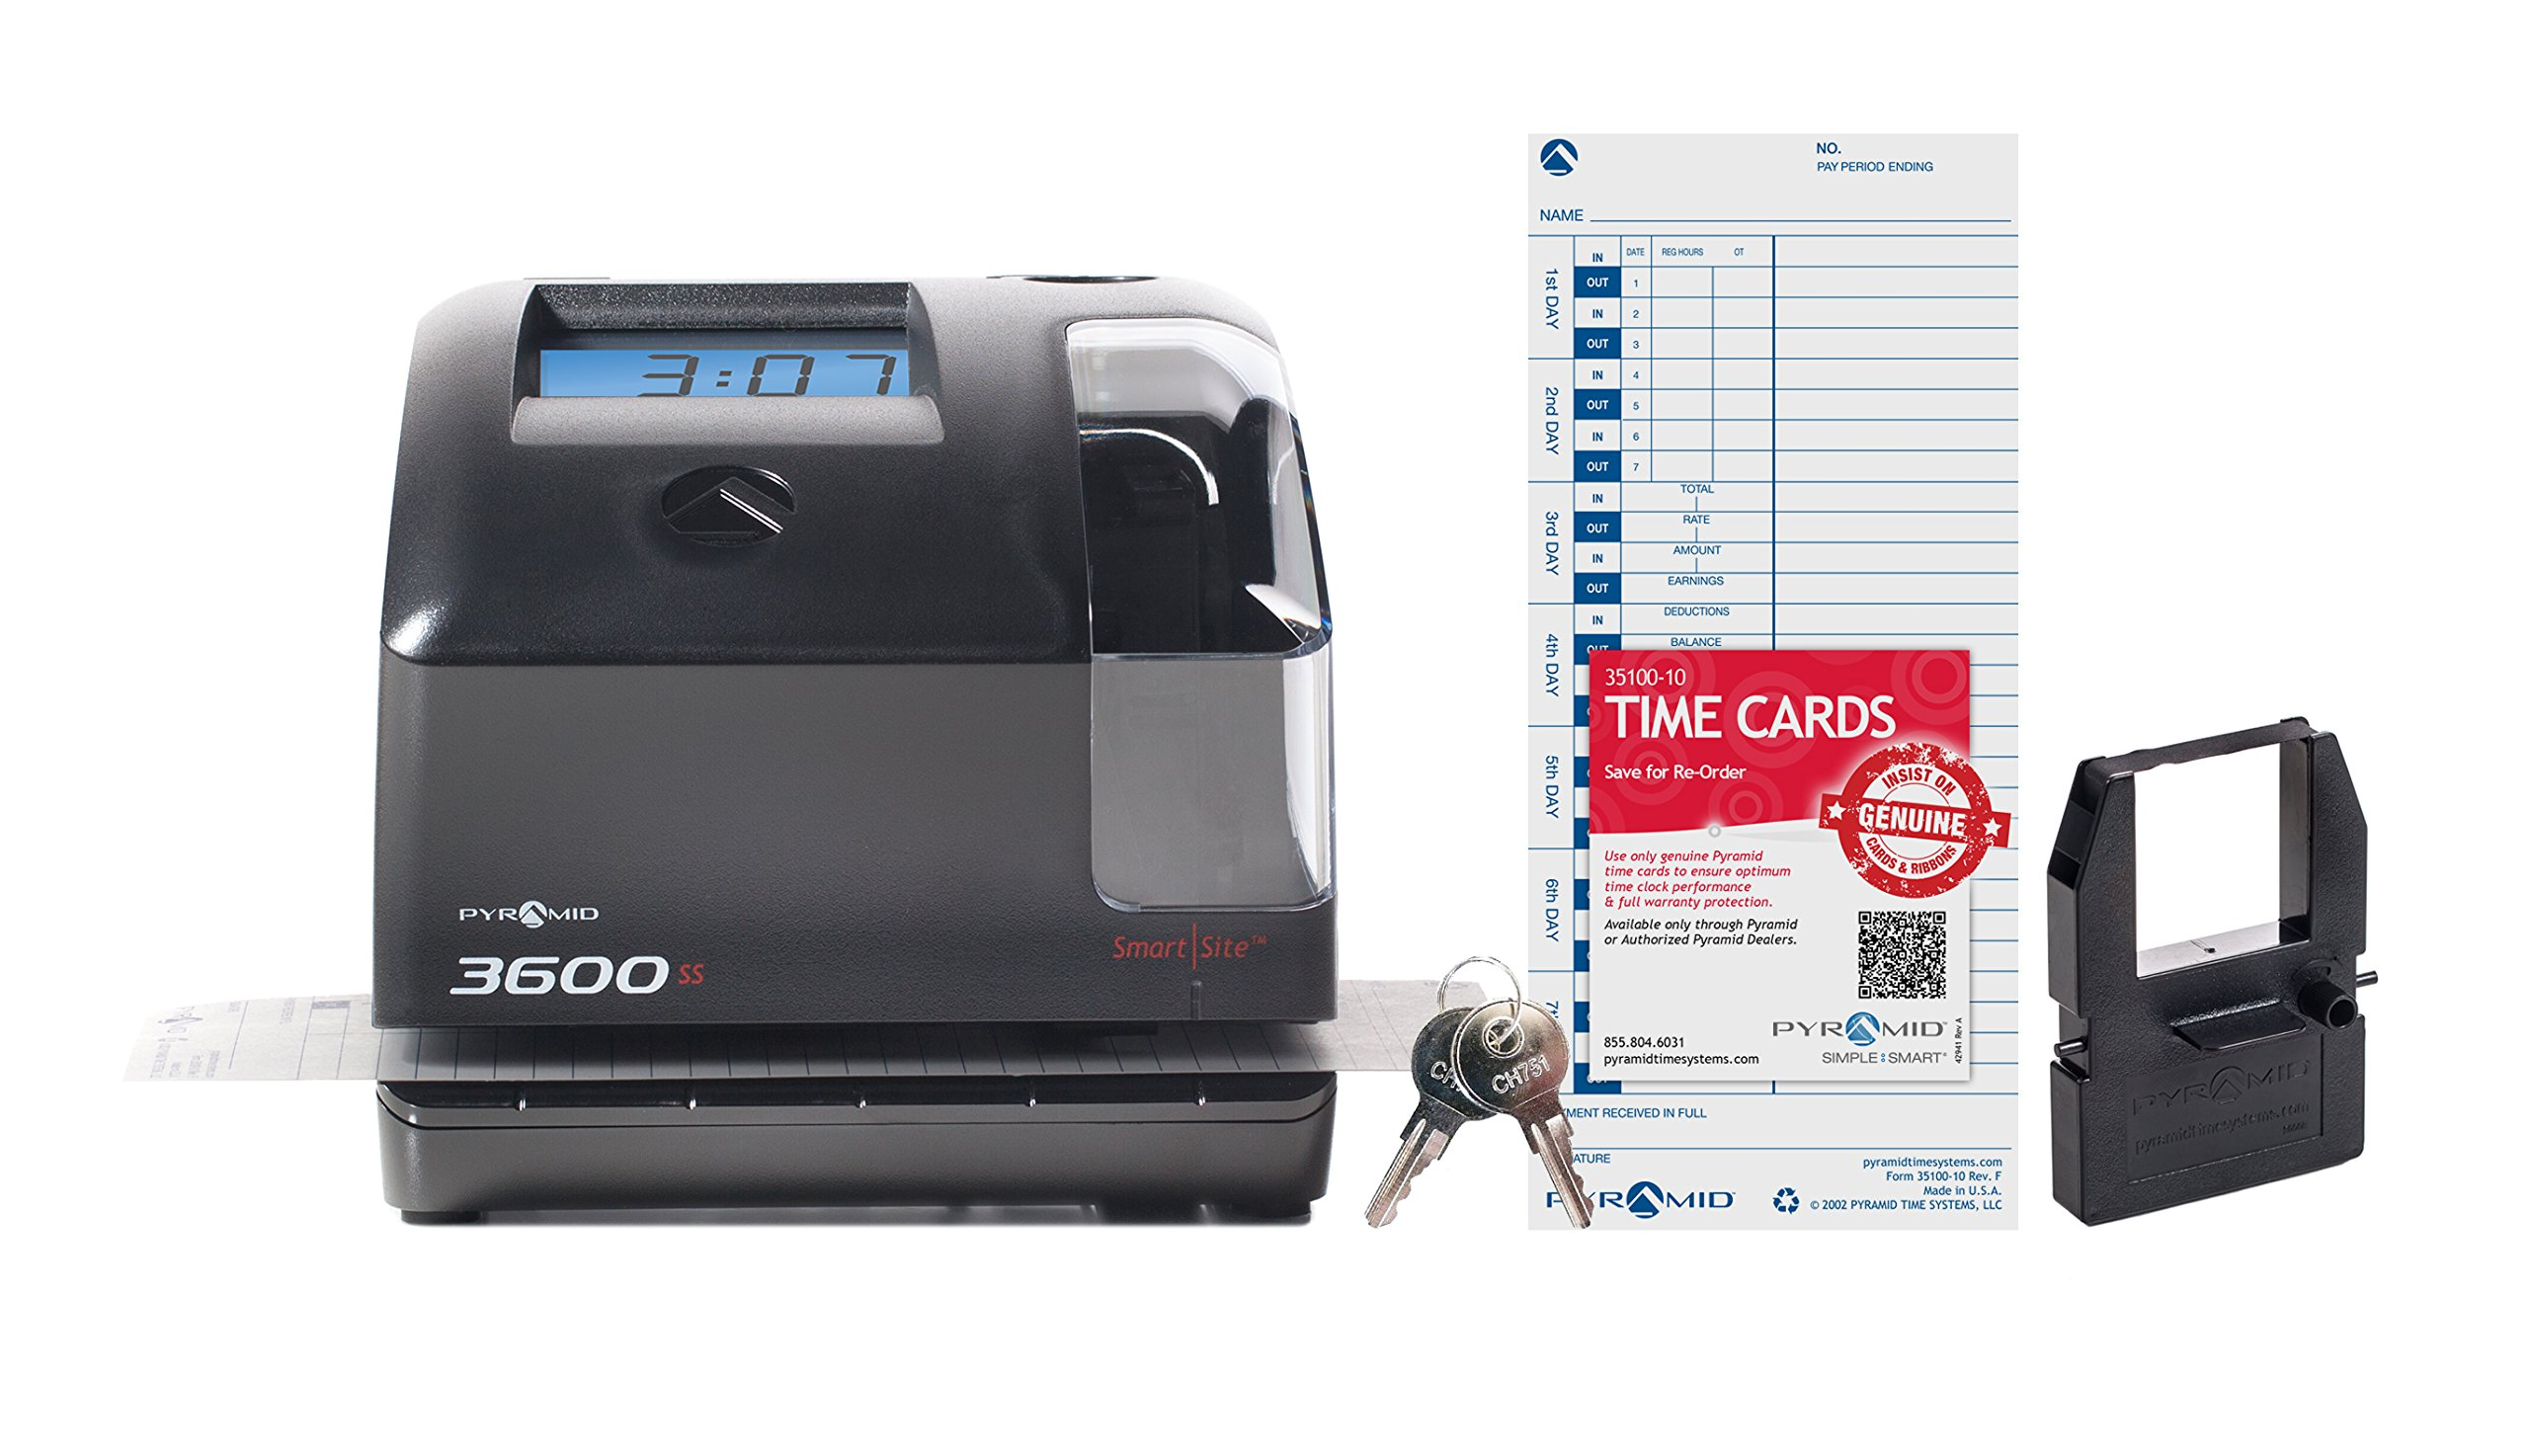 Pyramid 3600SS SmartSite Time Clock and Document Stamp - Made in the USA